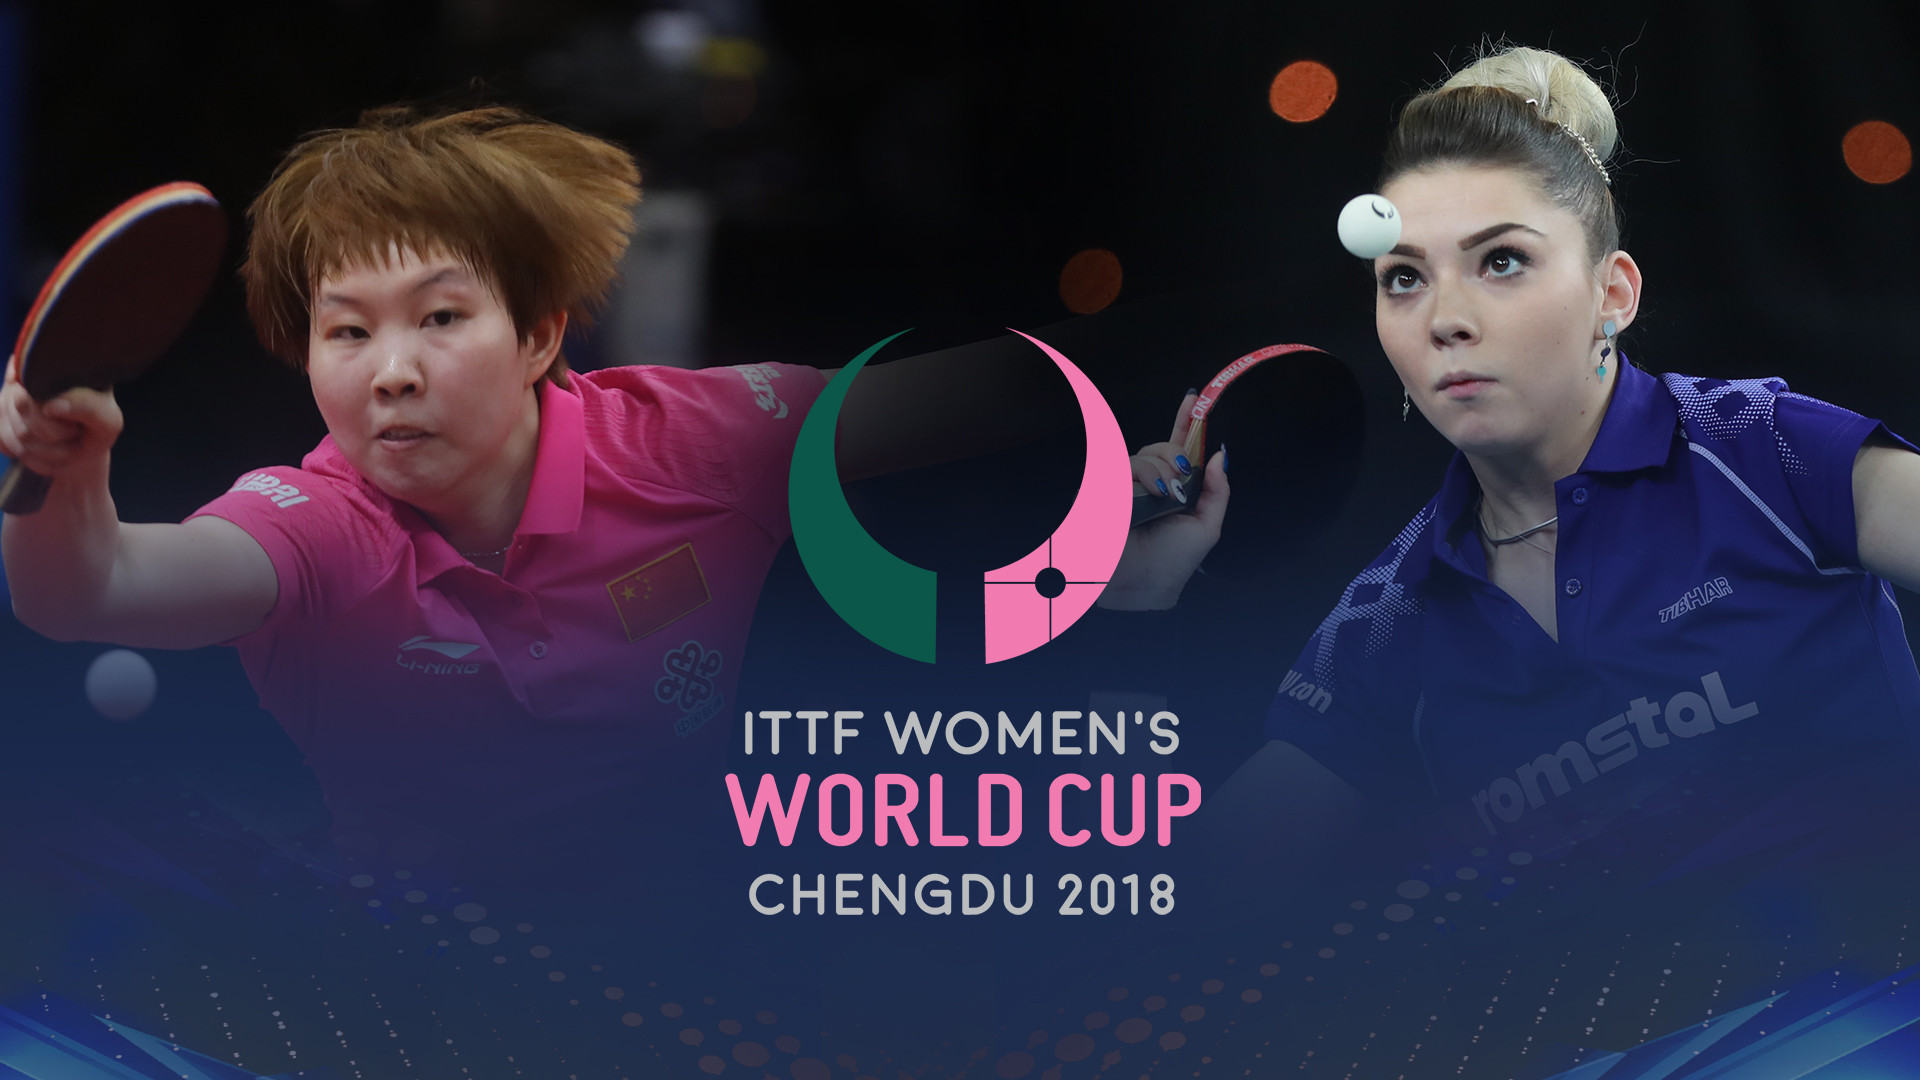 Zhu Yuling seeks to defend ITTF Women's World Cup title in home city of Chengdu